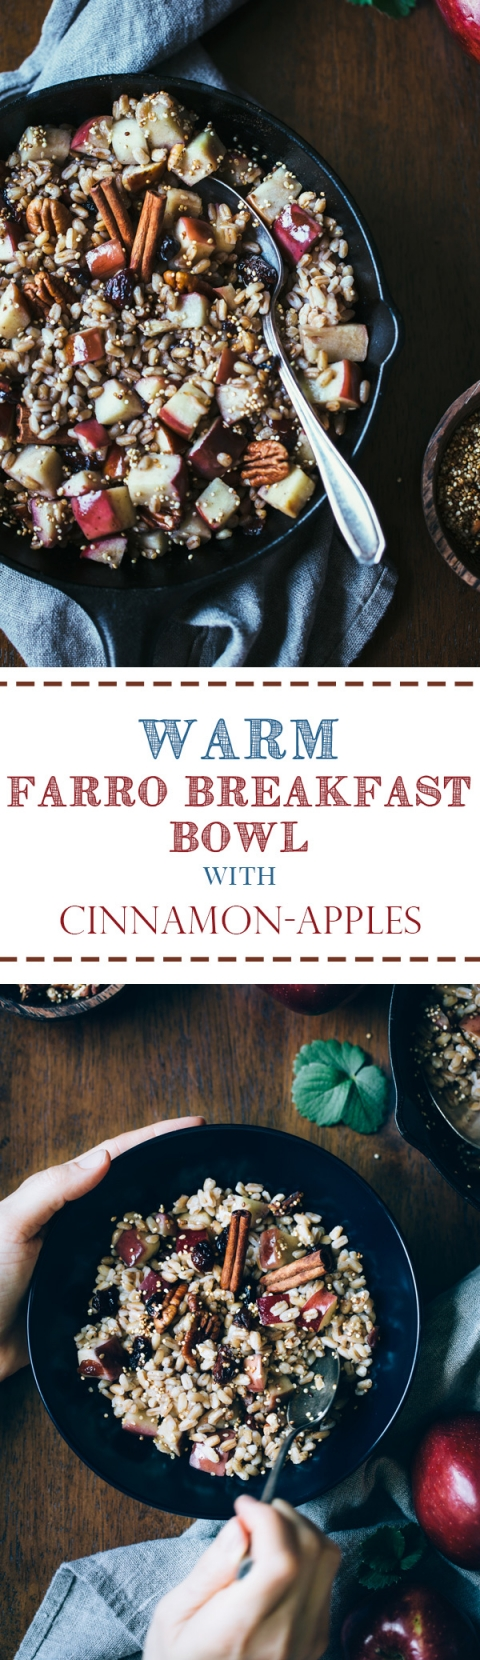 farro breakfast bowl recipe with Cinnamon, apples, and cranberries ...